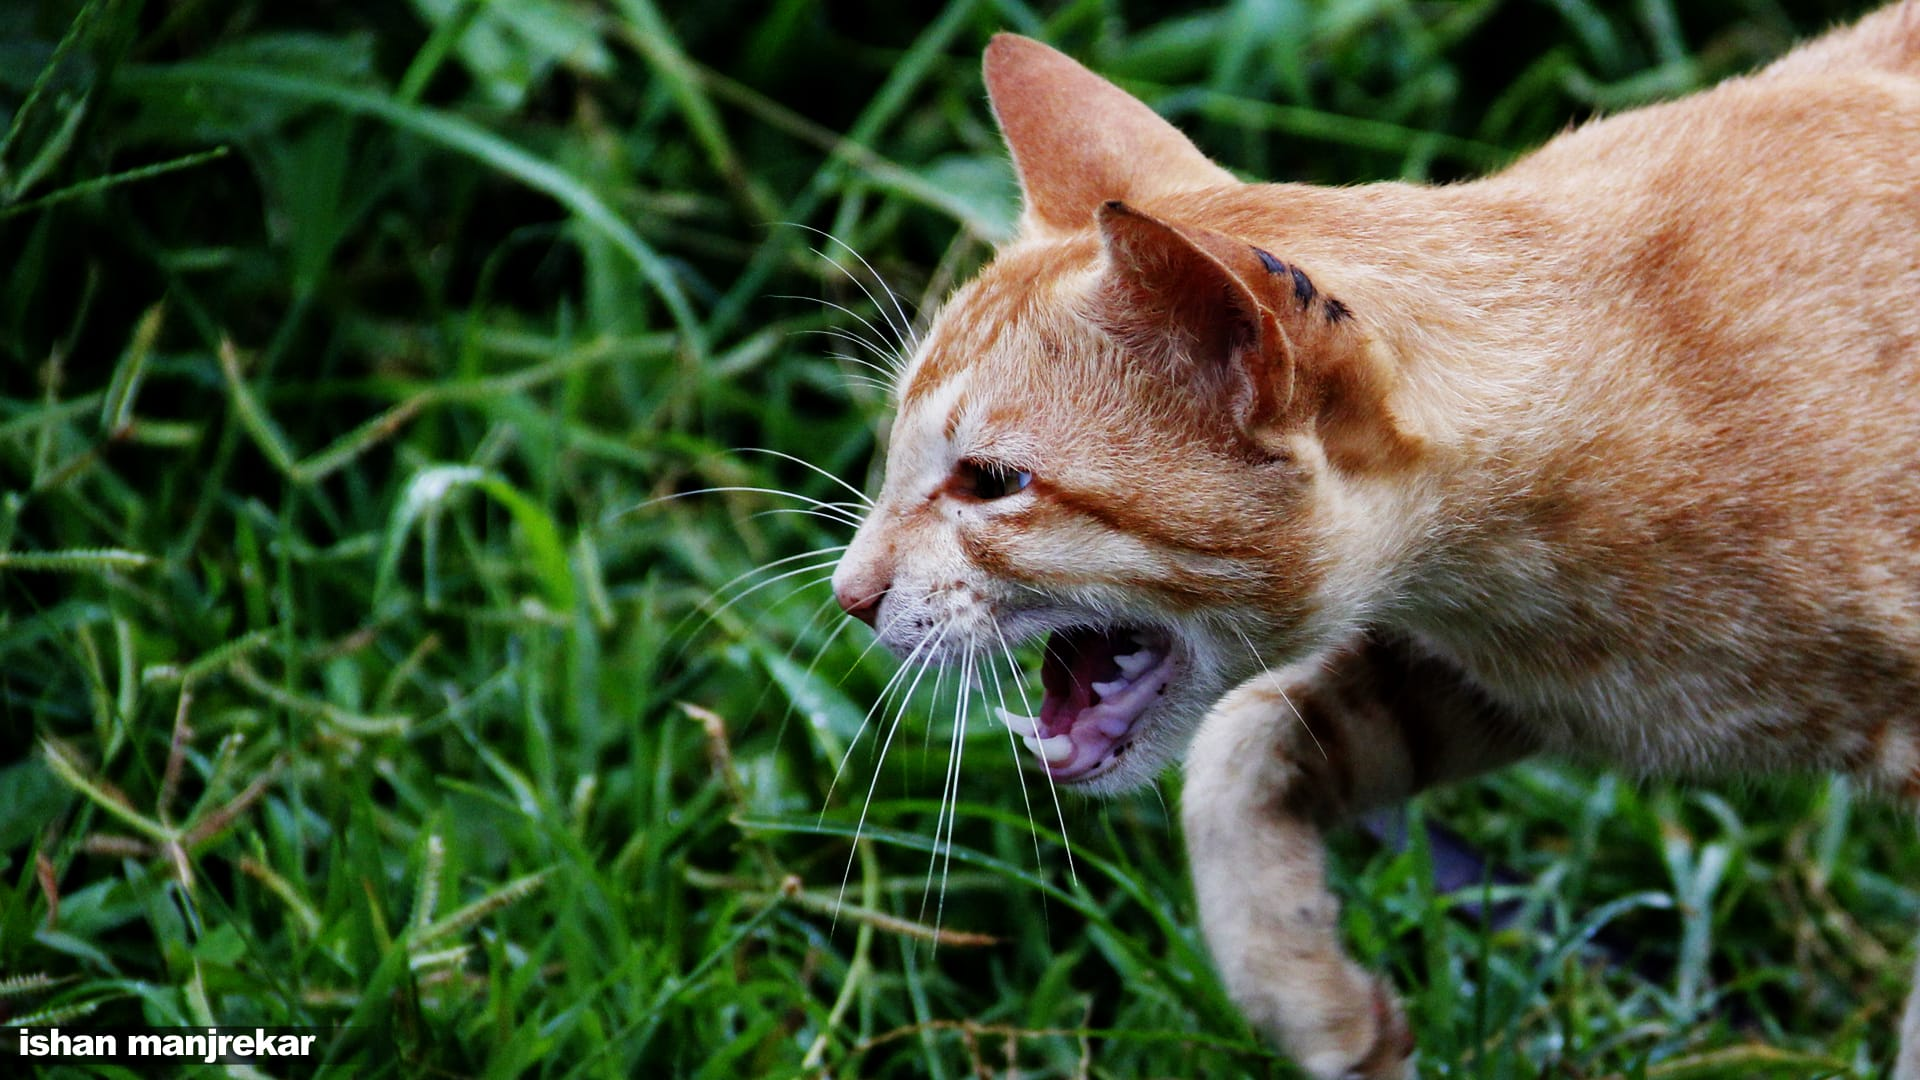 cats hiss when they are upset or see danger